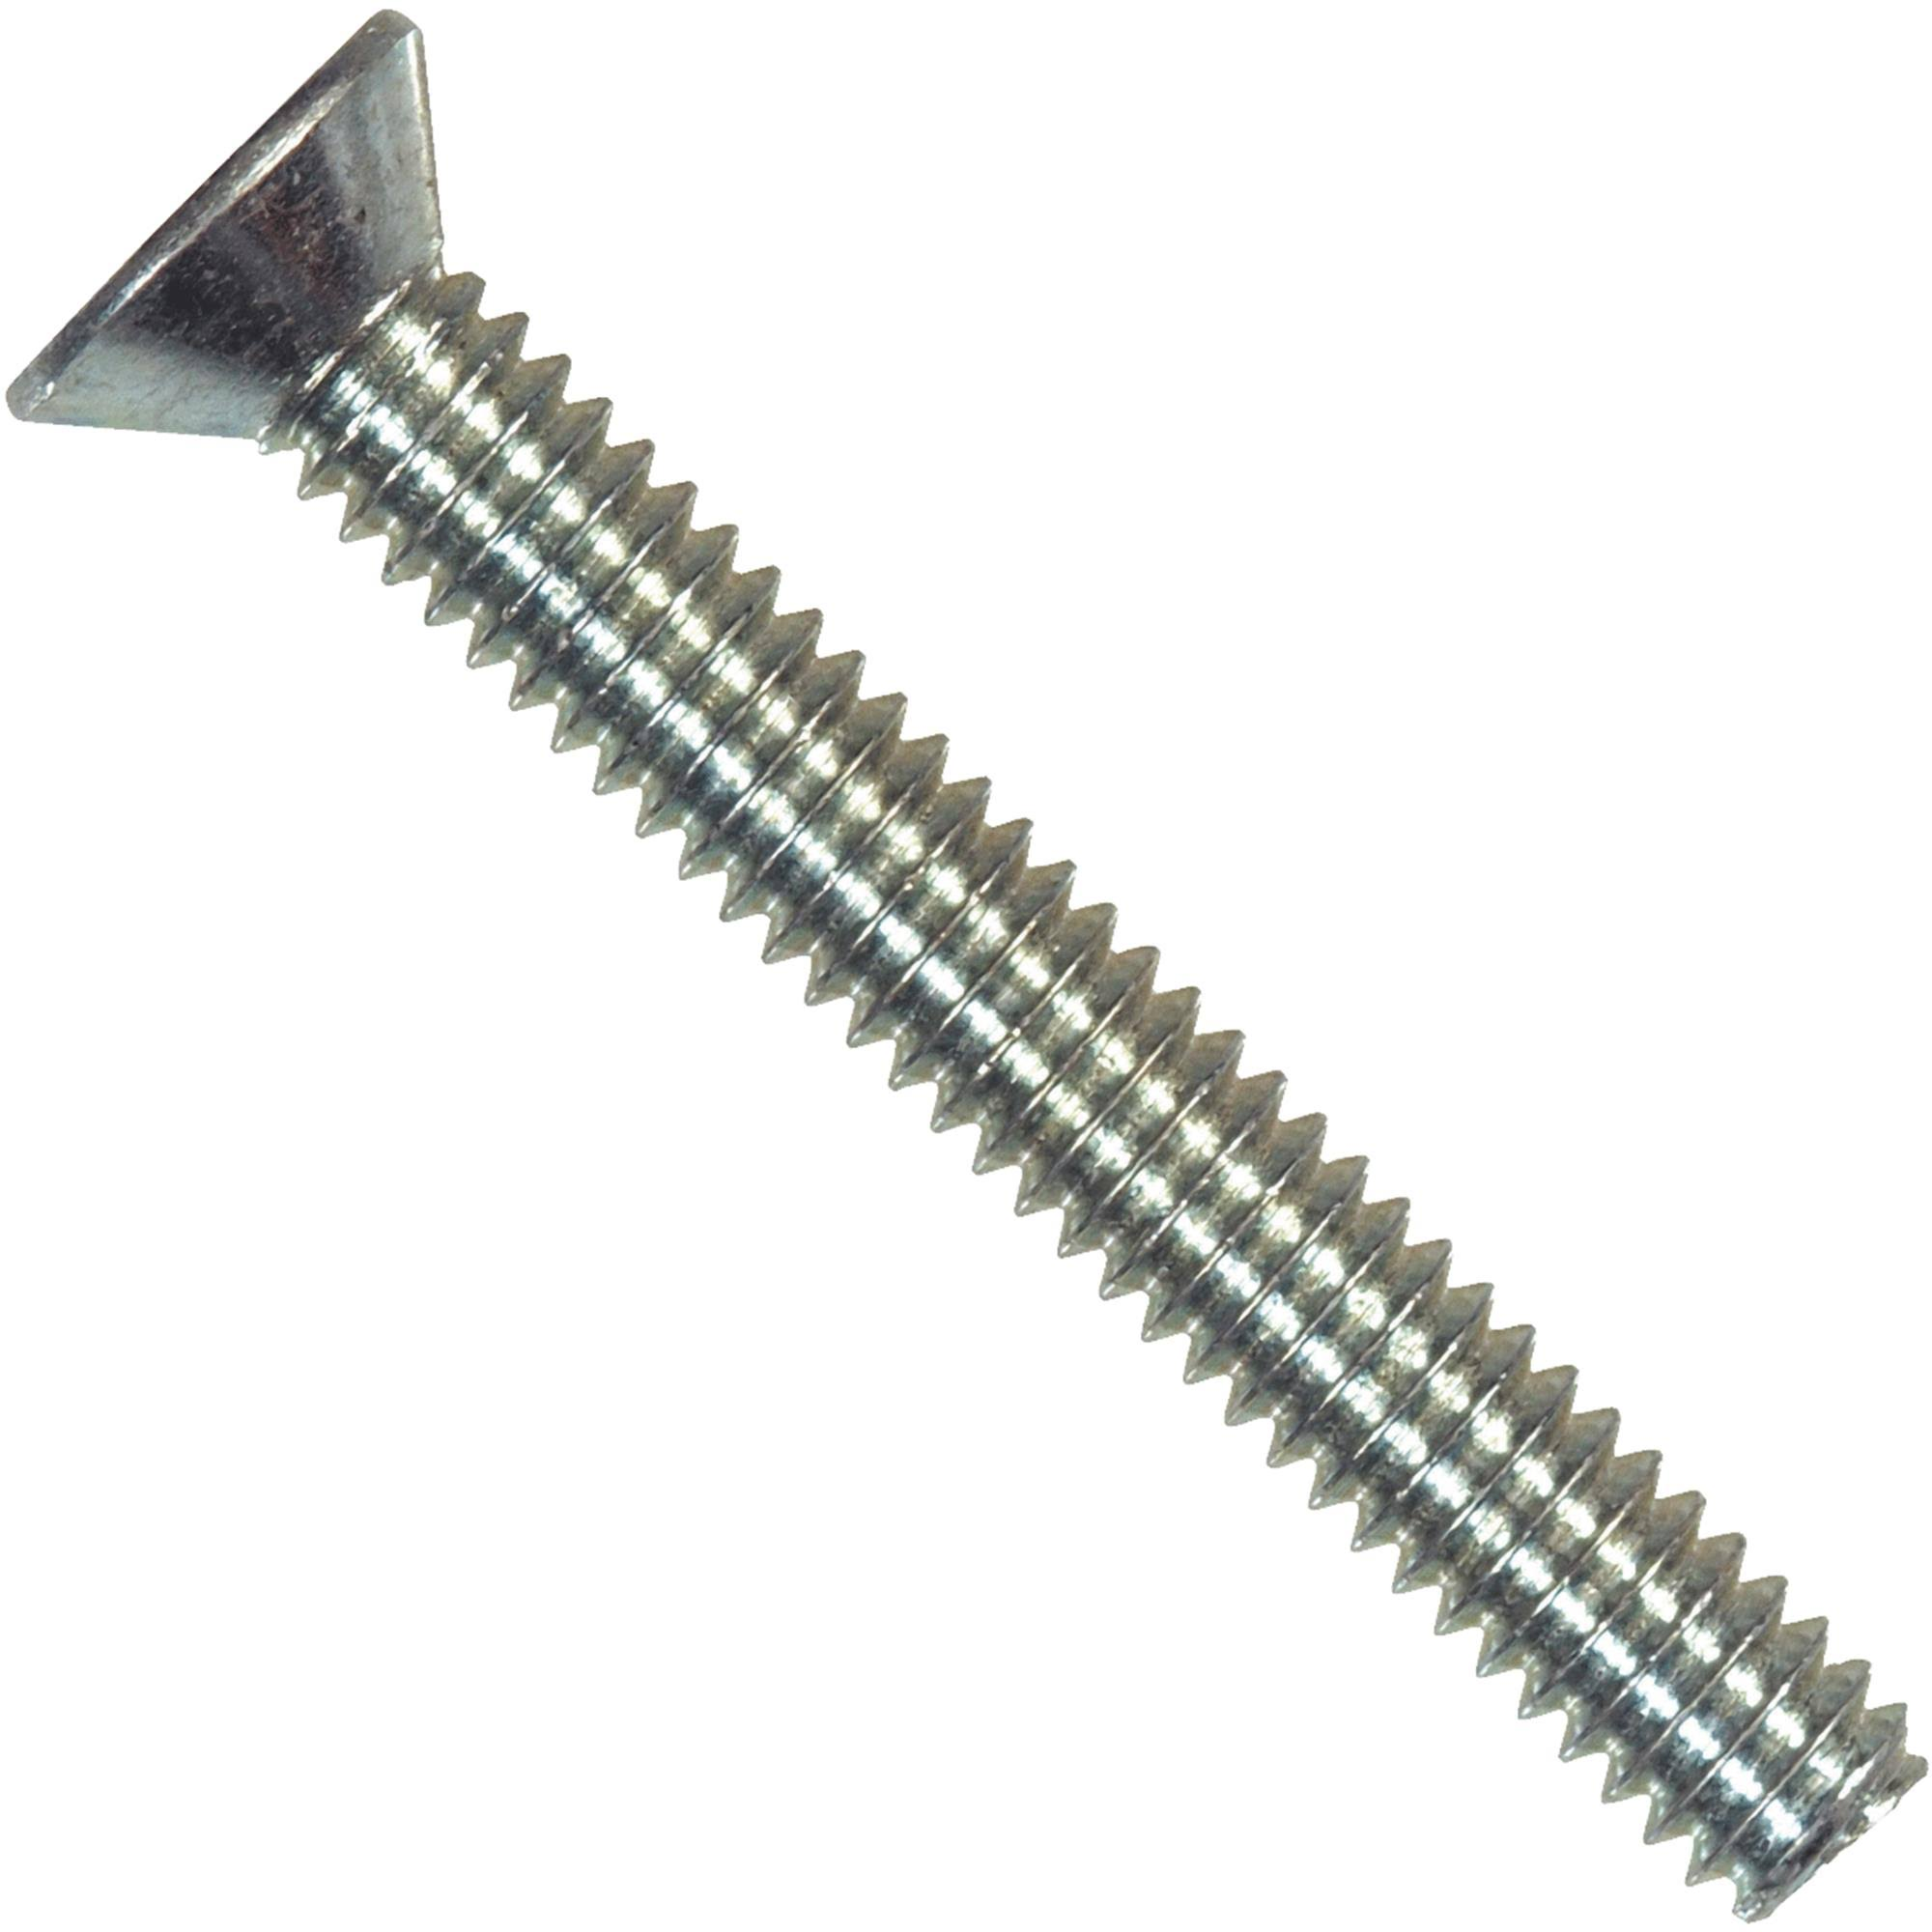 "The Hillman Group Flat Head Machine Screw - 10-24 x 3/4"", 100pk"